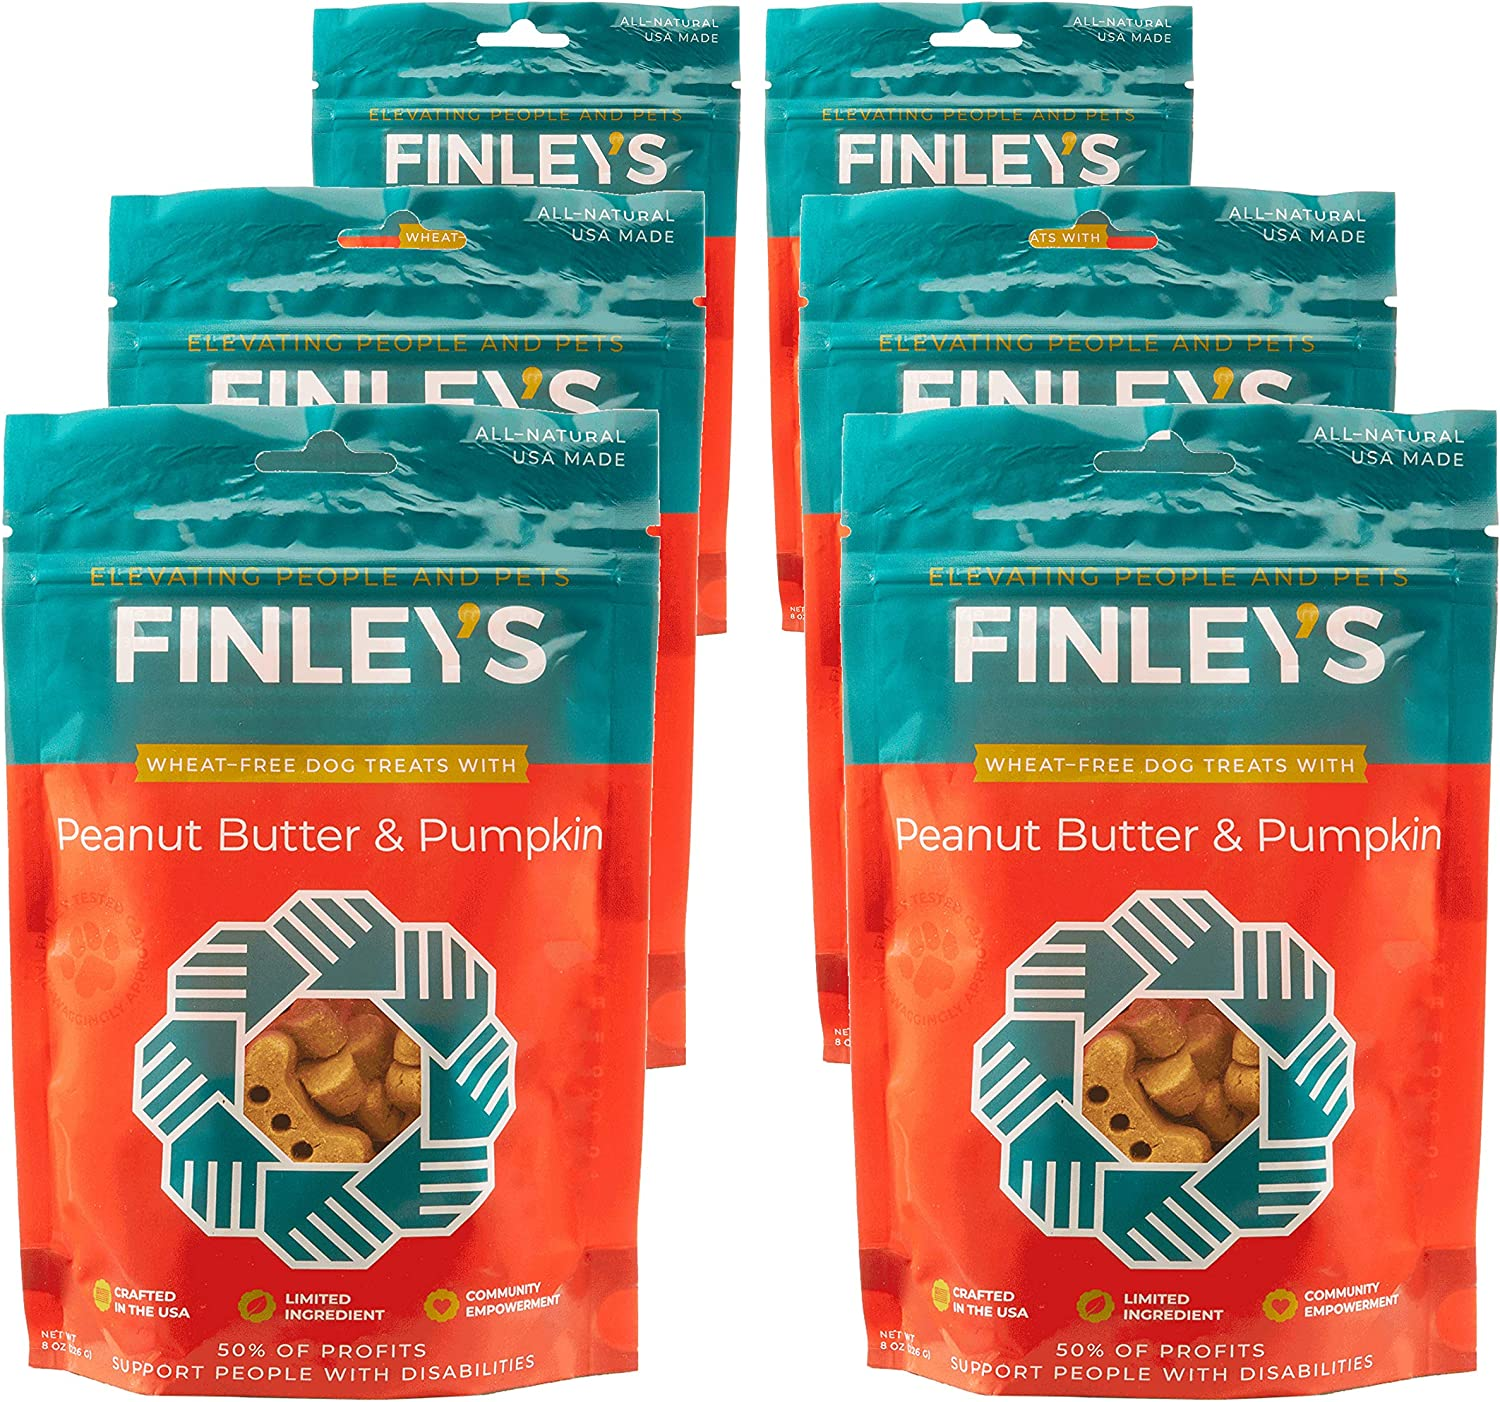 Finley's Barkery Peanut Butter & Pumpkin WheatFree Dog Treats  Natural Crunchy Limited Ingredient Dog Biscuits Free of Corn & Soy (6 Pack)